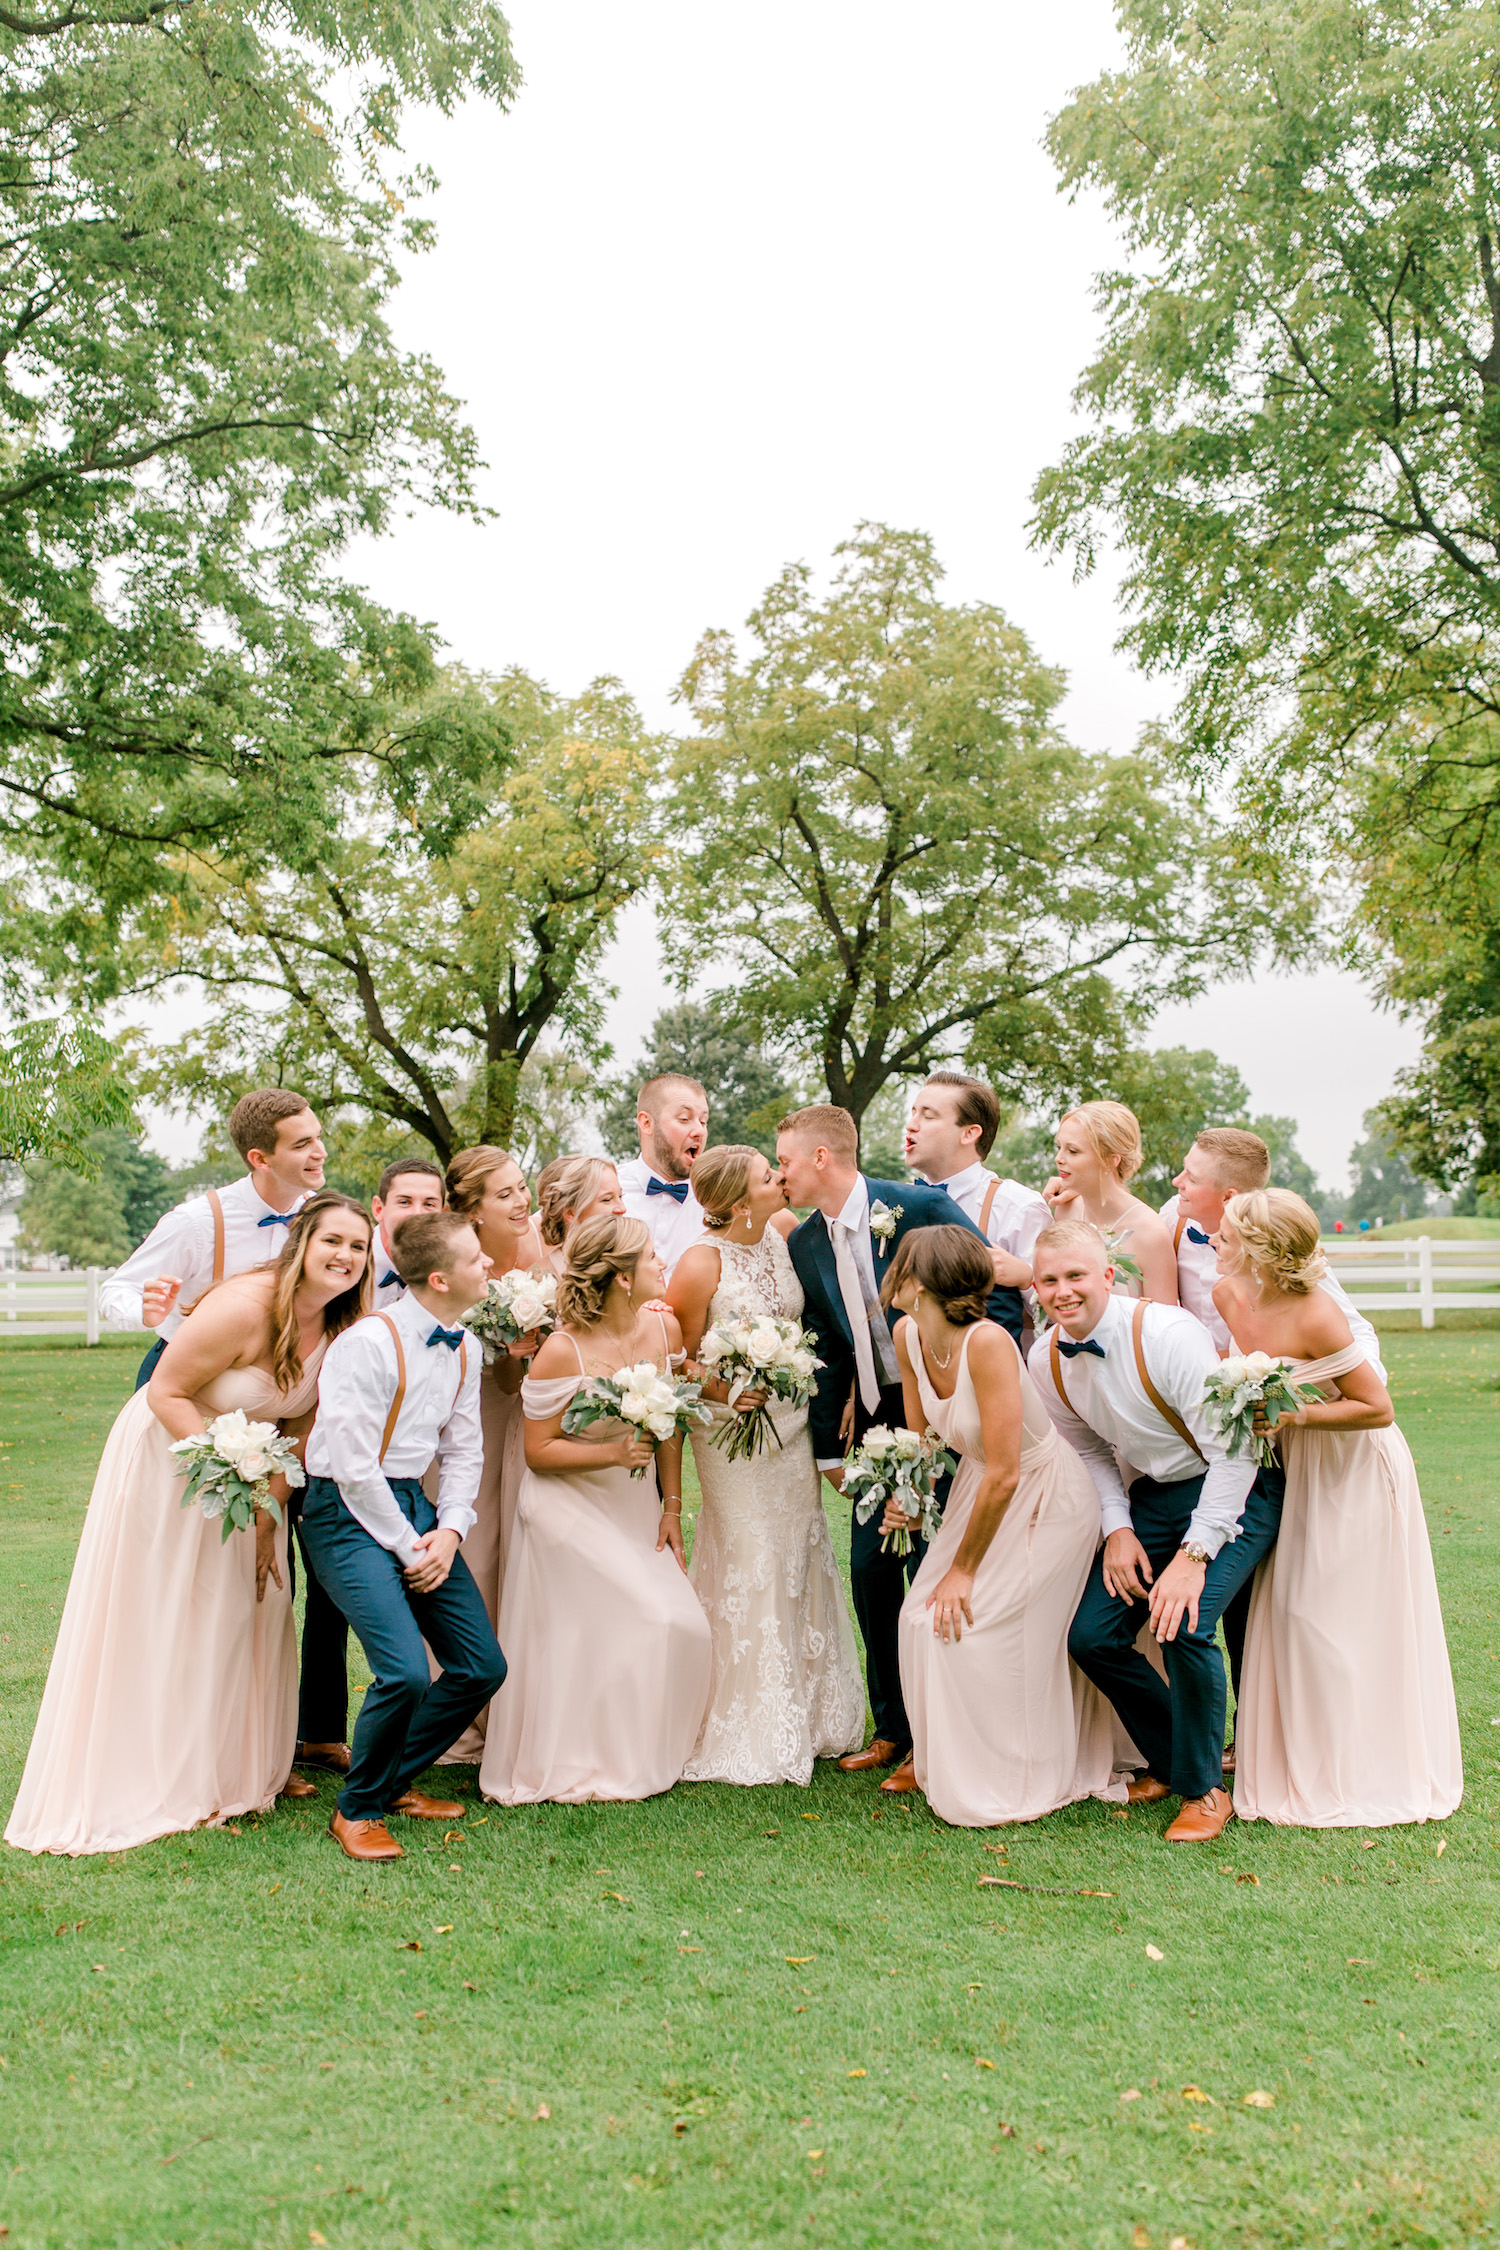 Bridal party gathering together